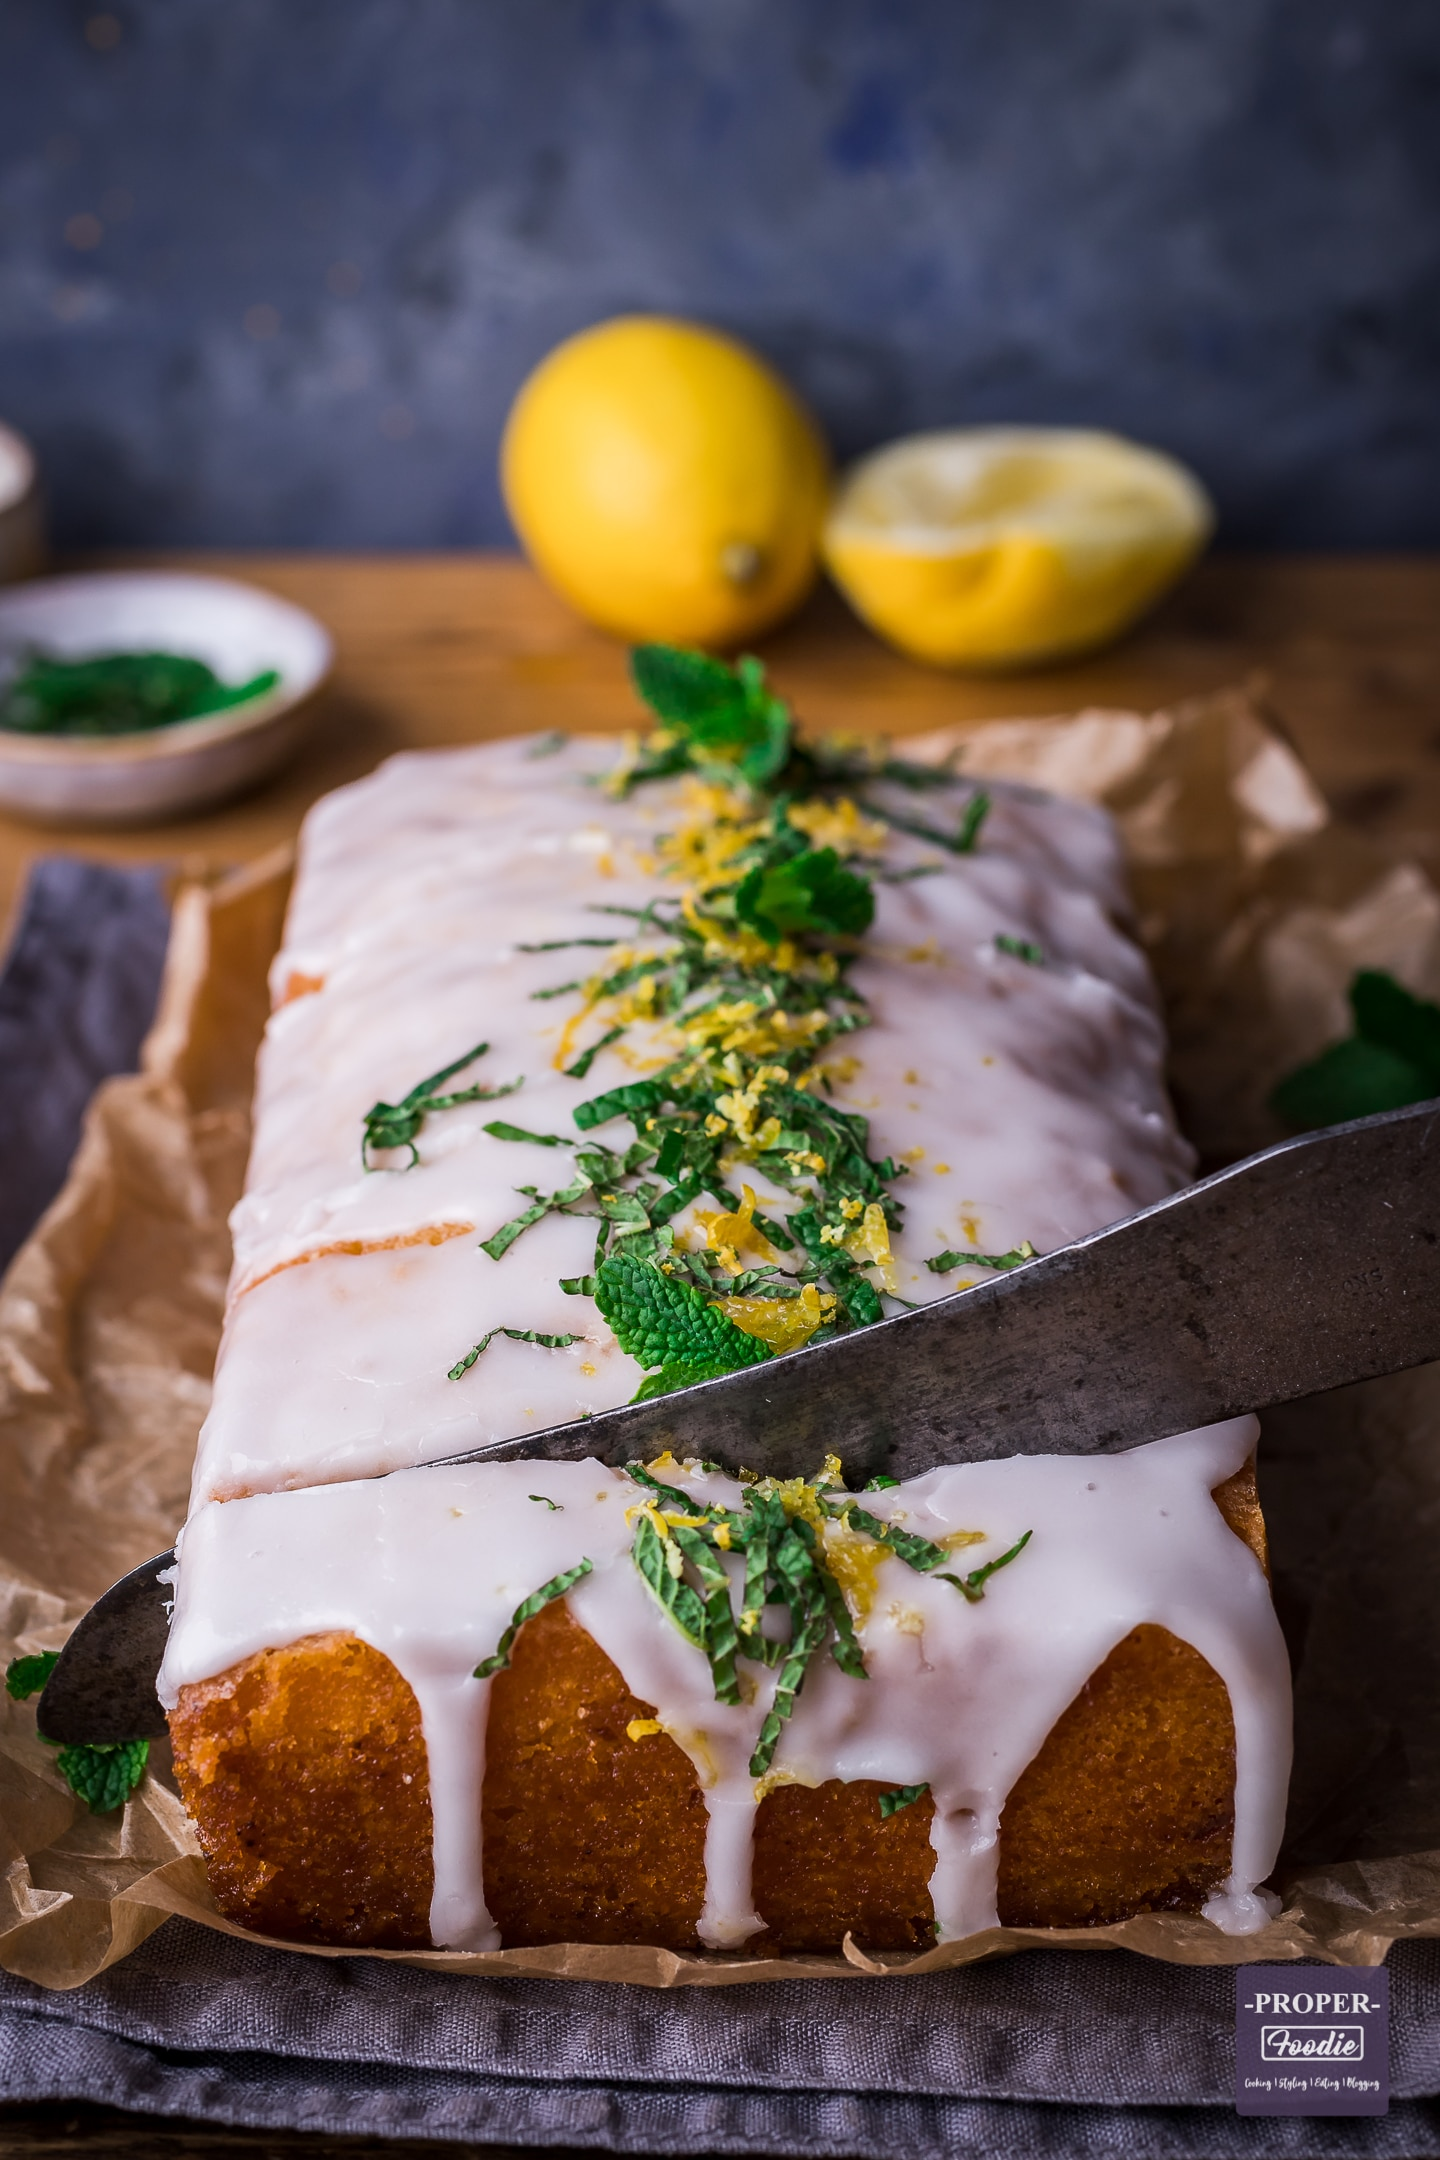 Lemon drizzle cake with lemon icing being sliced into with a knife